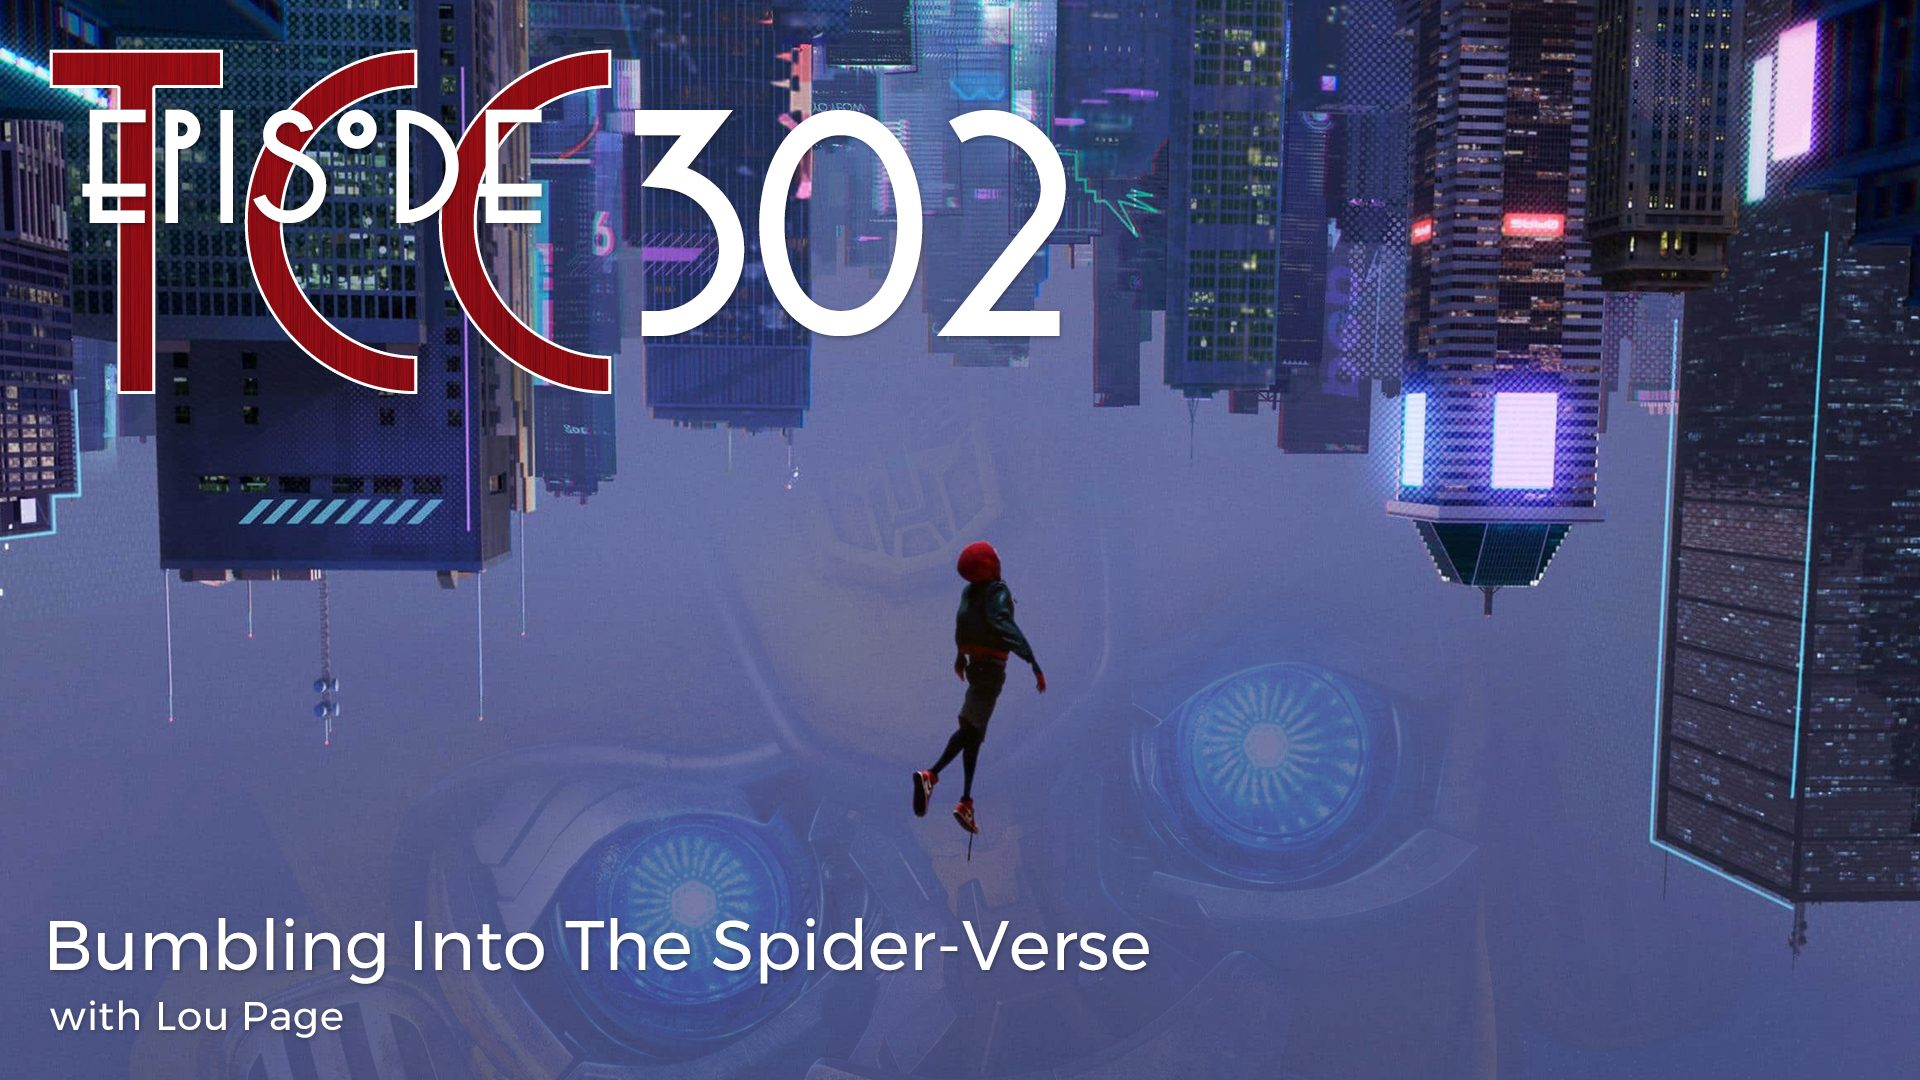 The Citadel Cafe 302: Bumbling Into The Spider-Verse